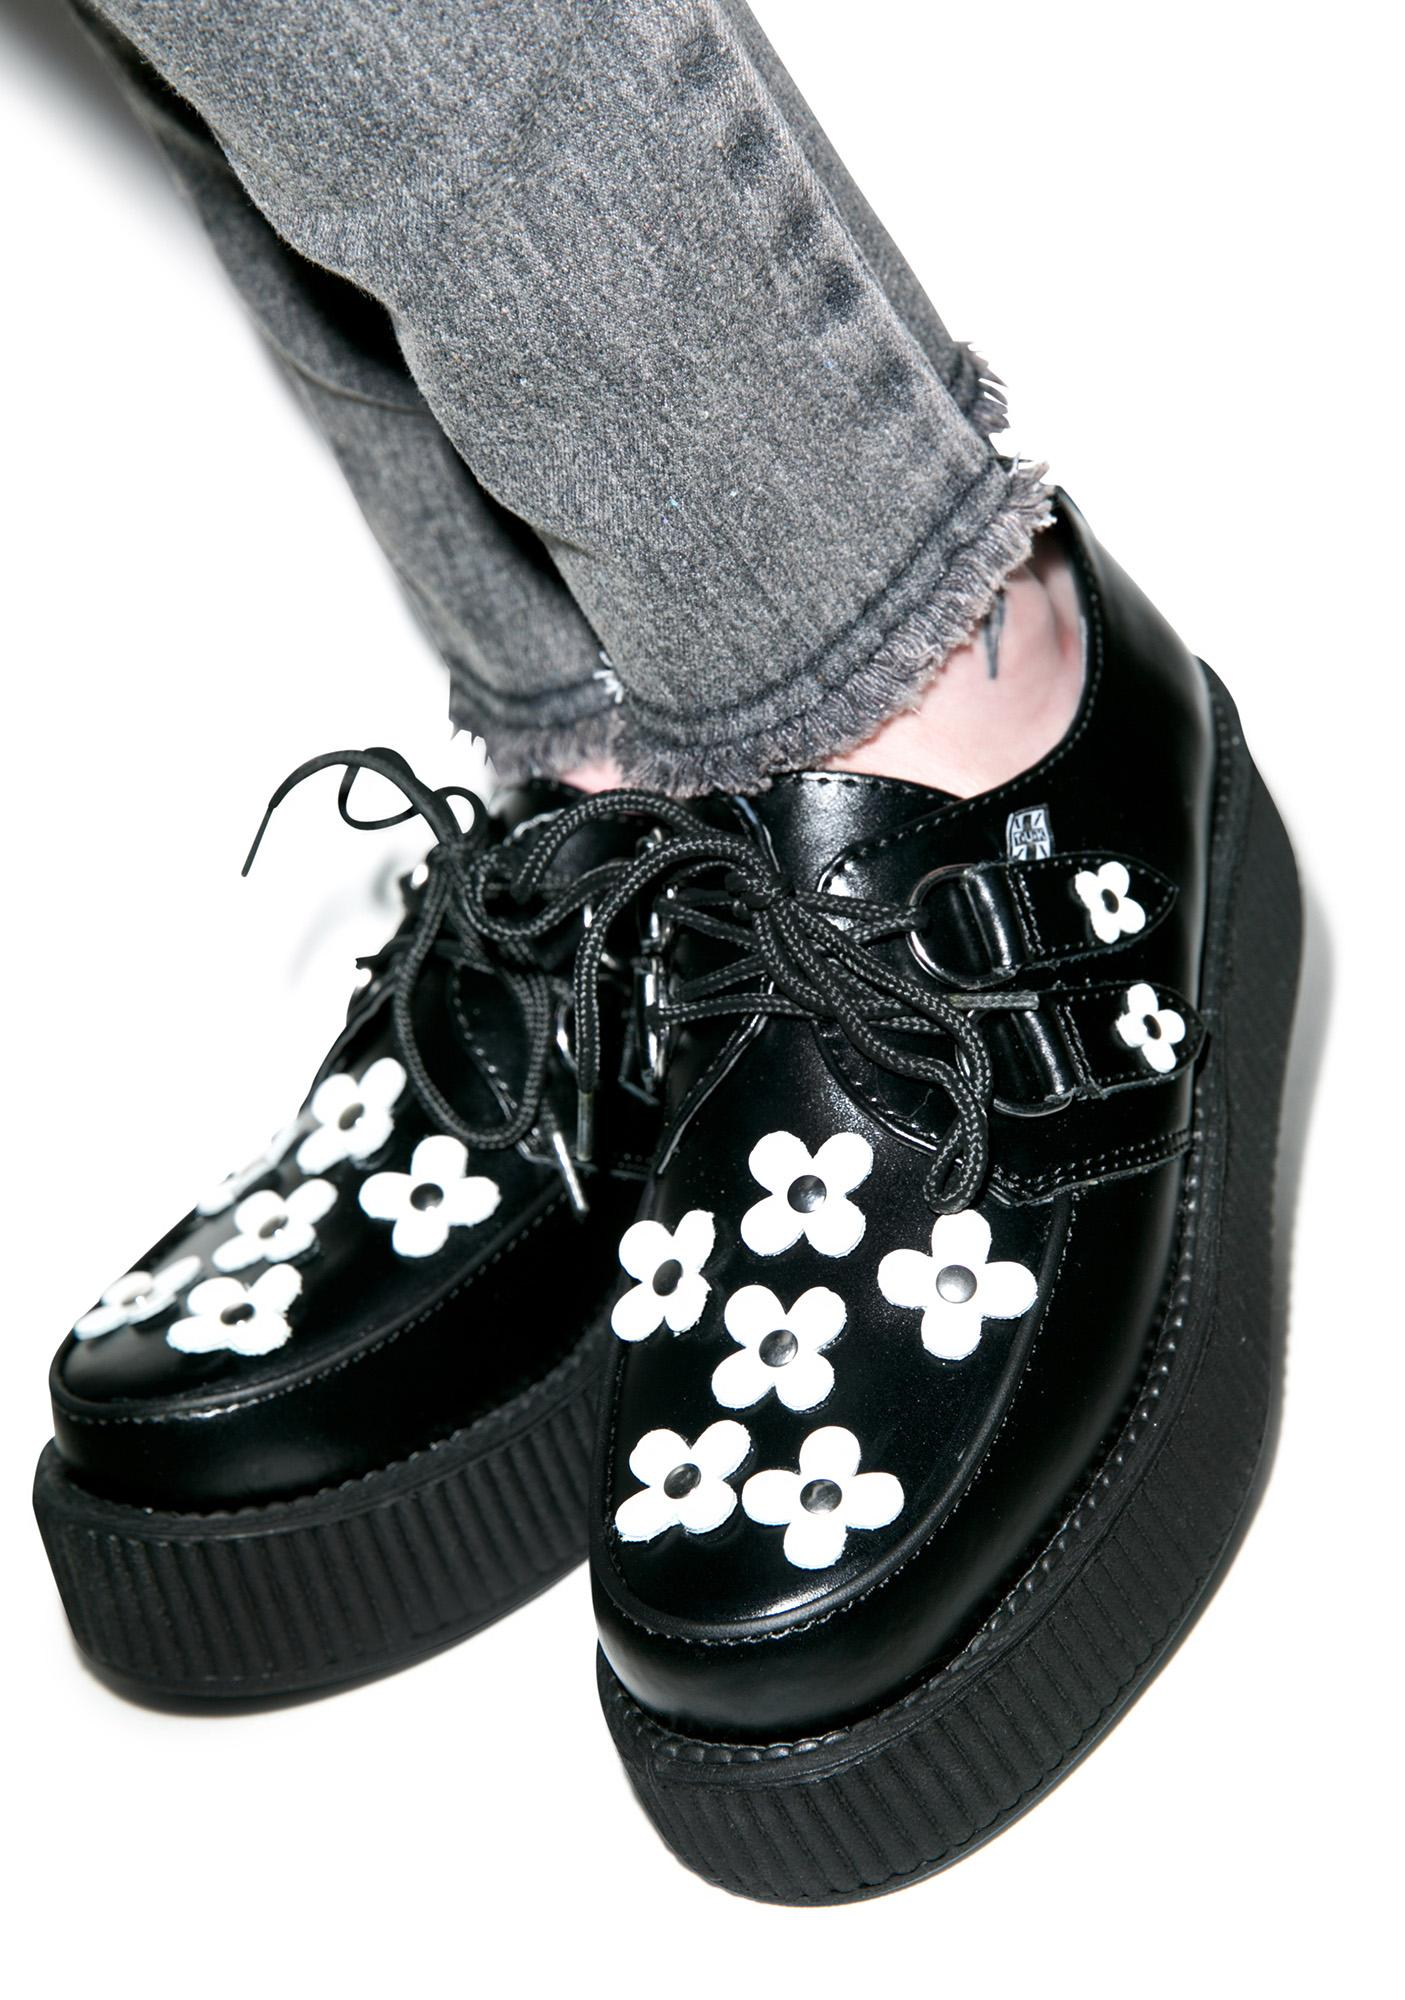 T.U.K. Flower Viva Mondo Creeper